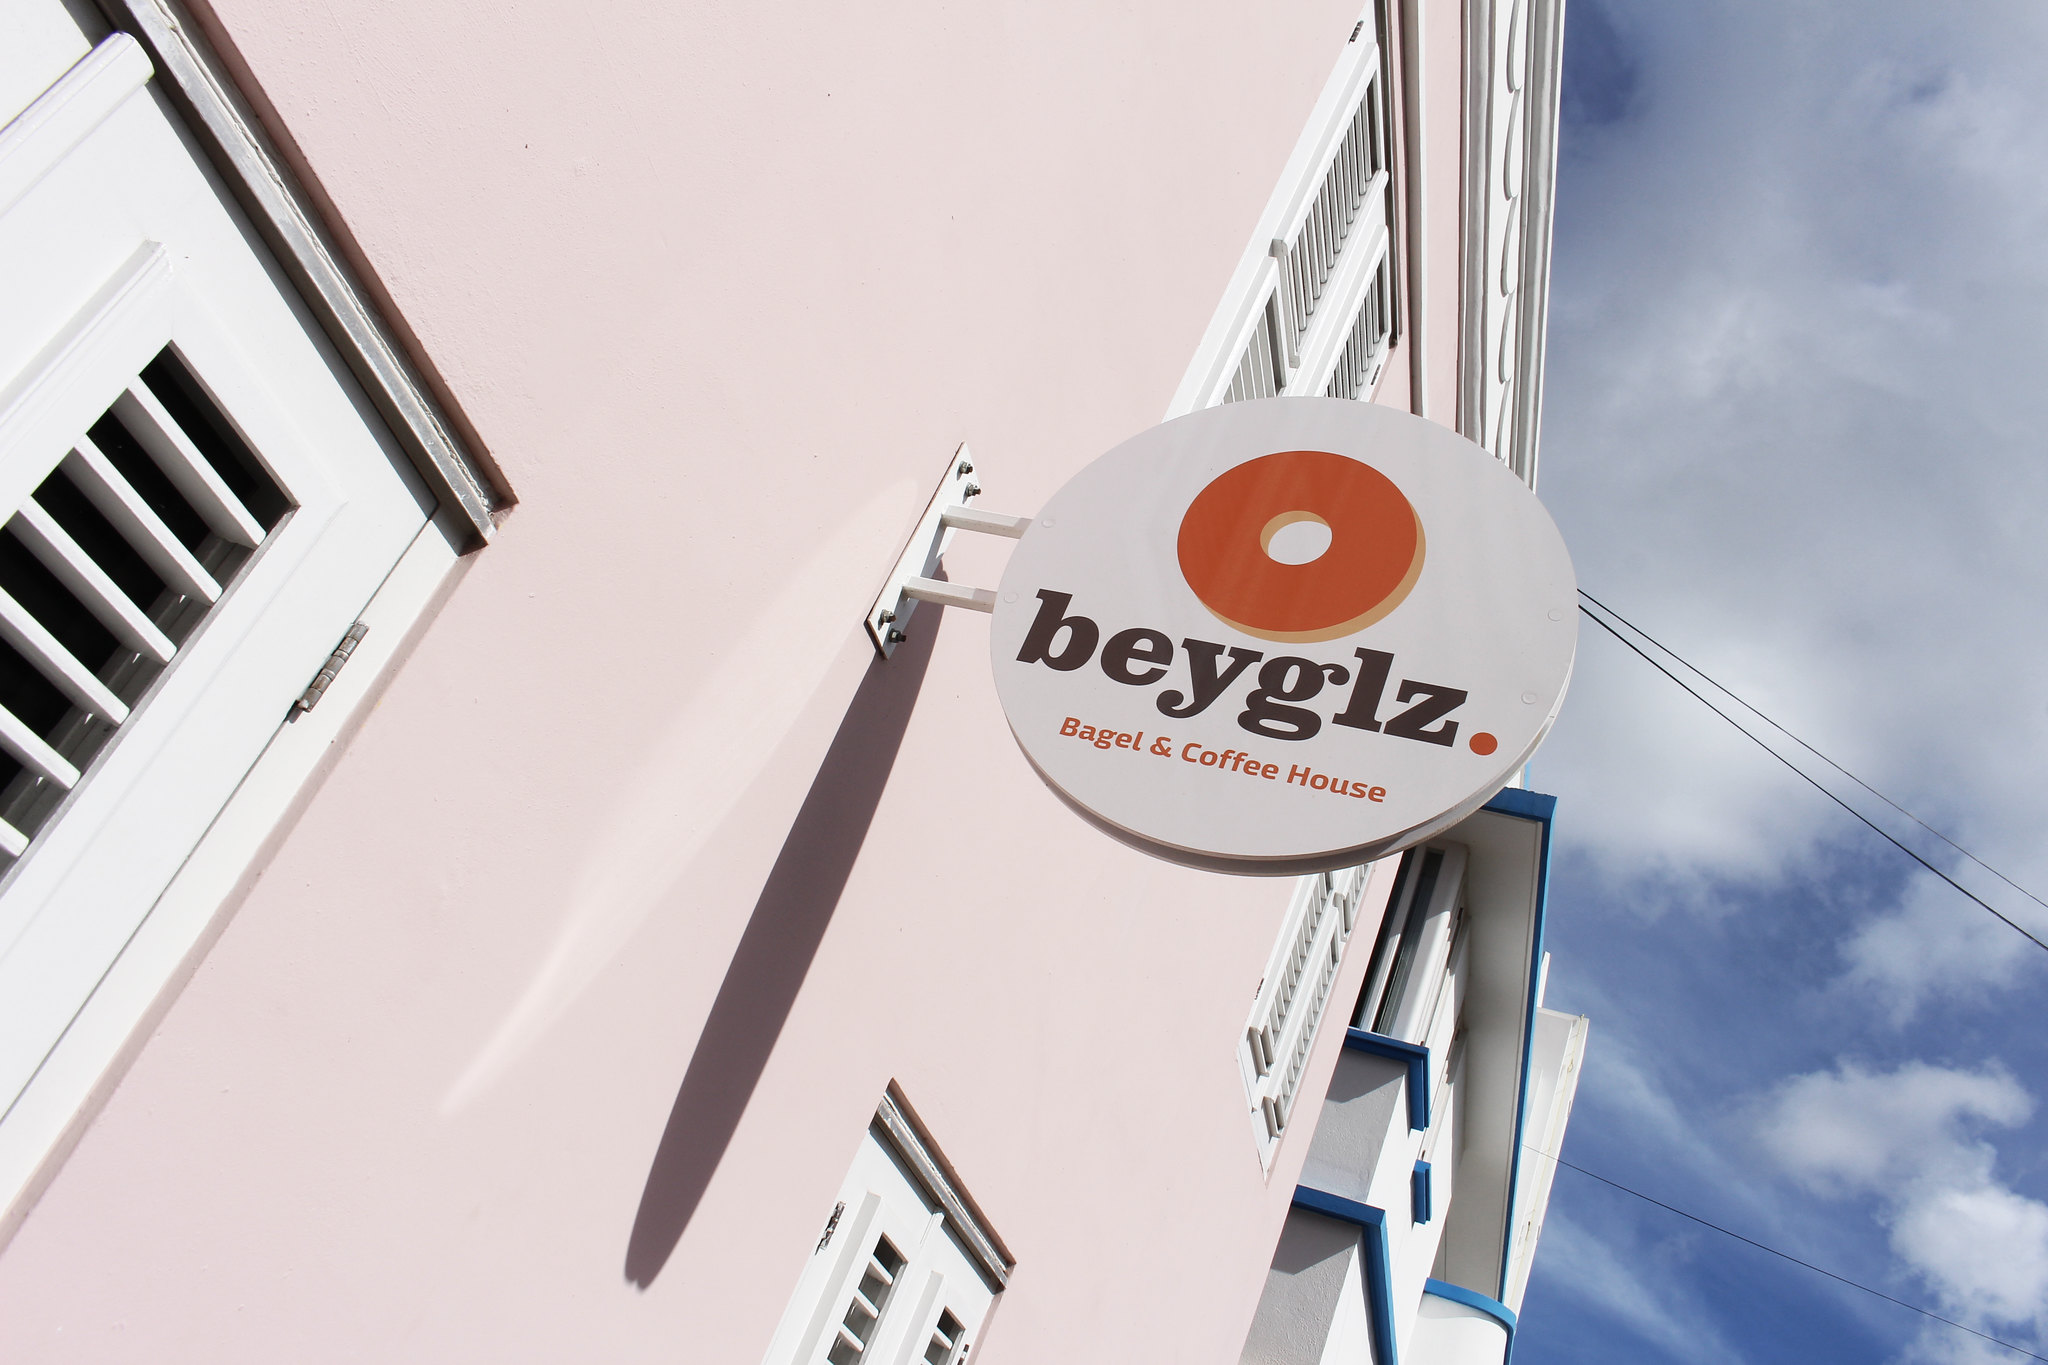 beyglz, curacao, coffee, bagels, shop, cafe, downton, tripadvisor, must visit, tourist, restaurant,local, vegan, organic, natural, healthy